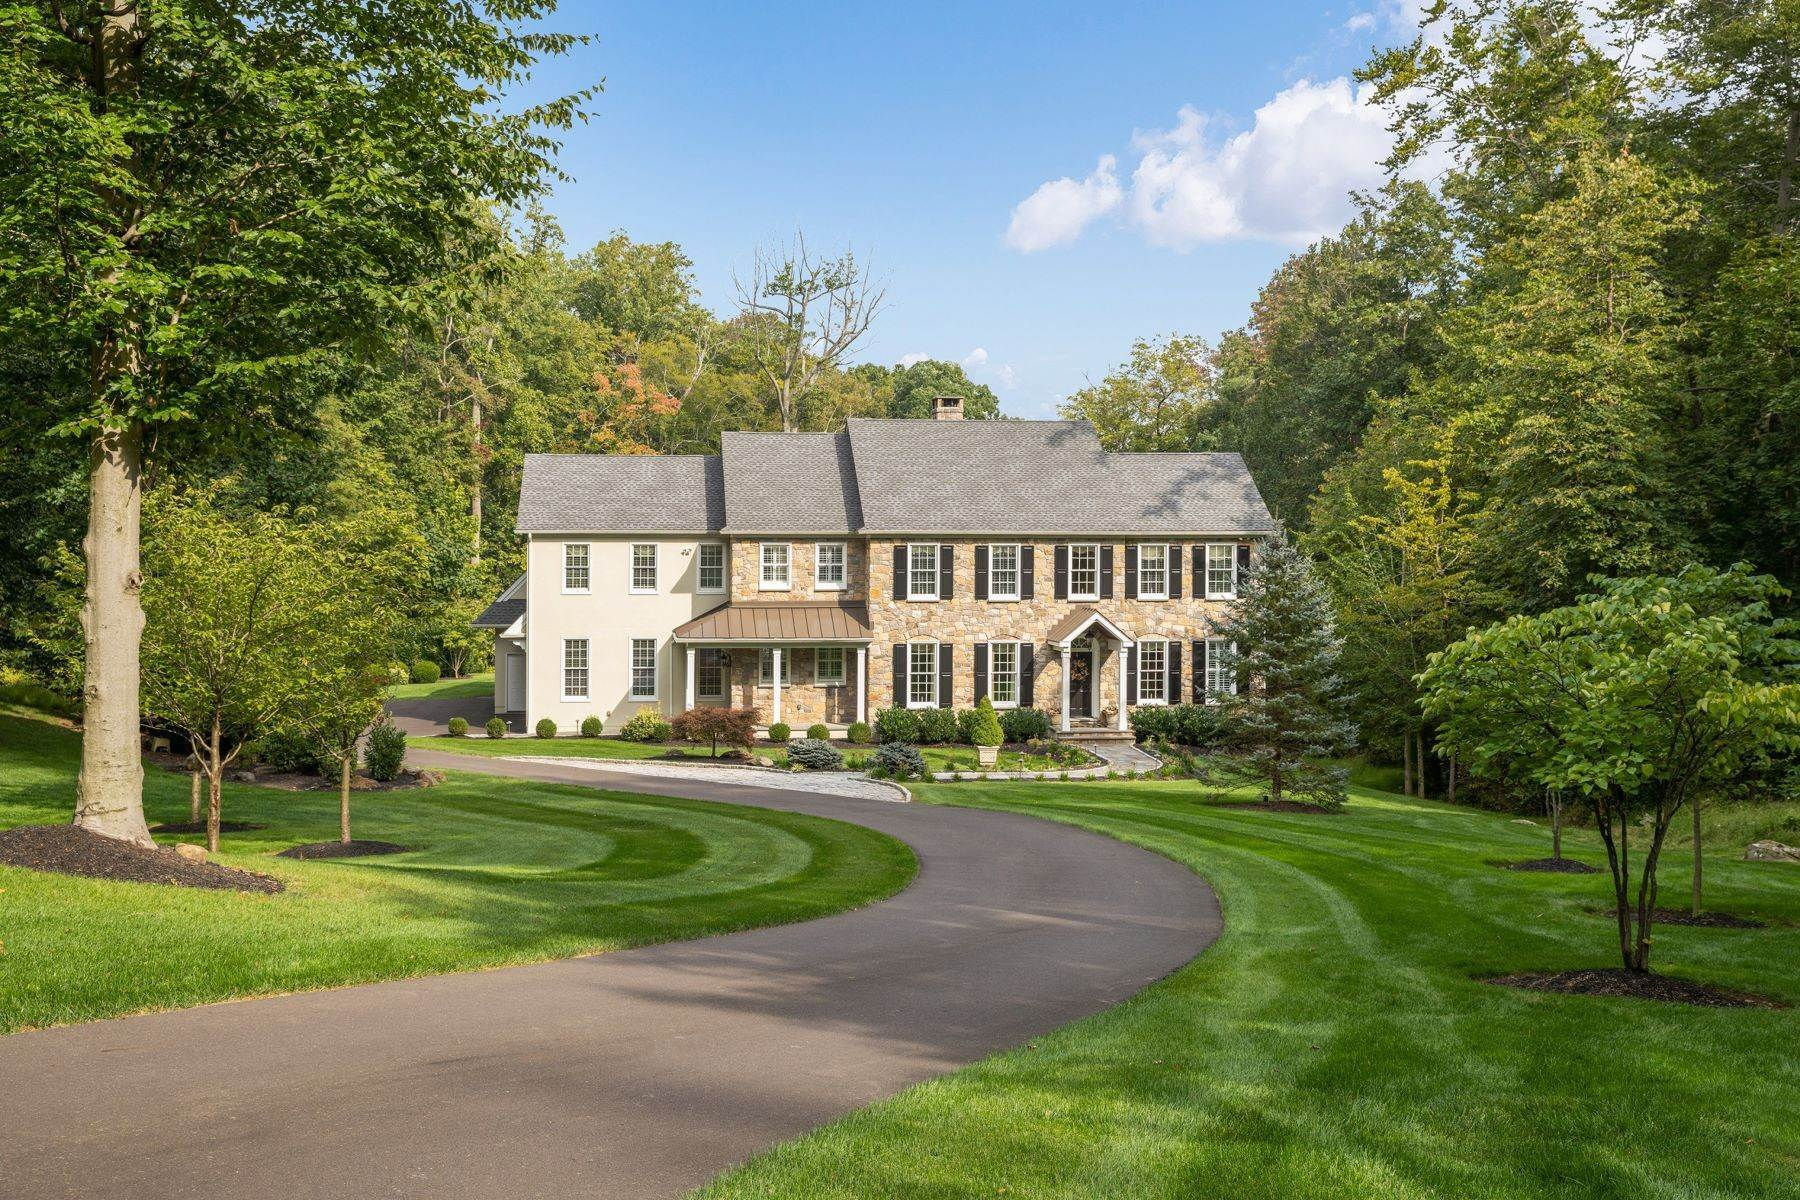 Single Family Homes for Sale at 408 ROCKWOOD PATH New Hope, Pennsylvania 18938 United States